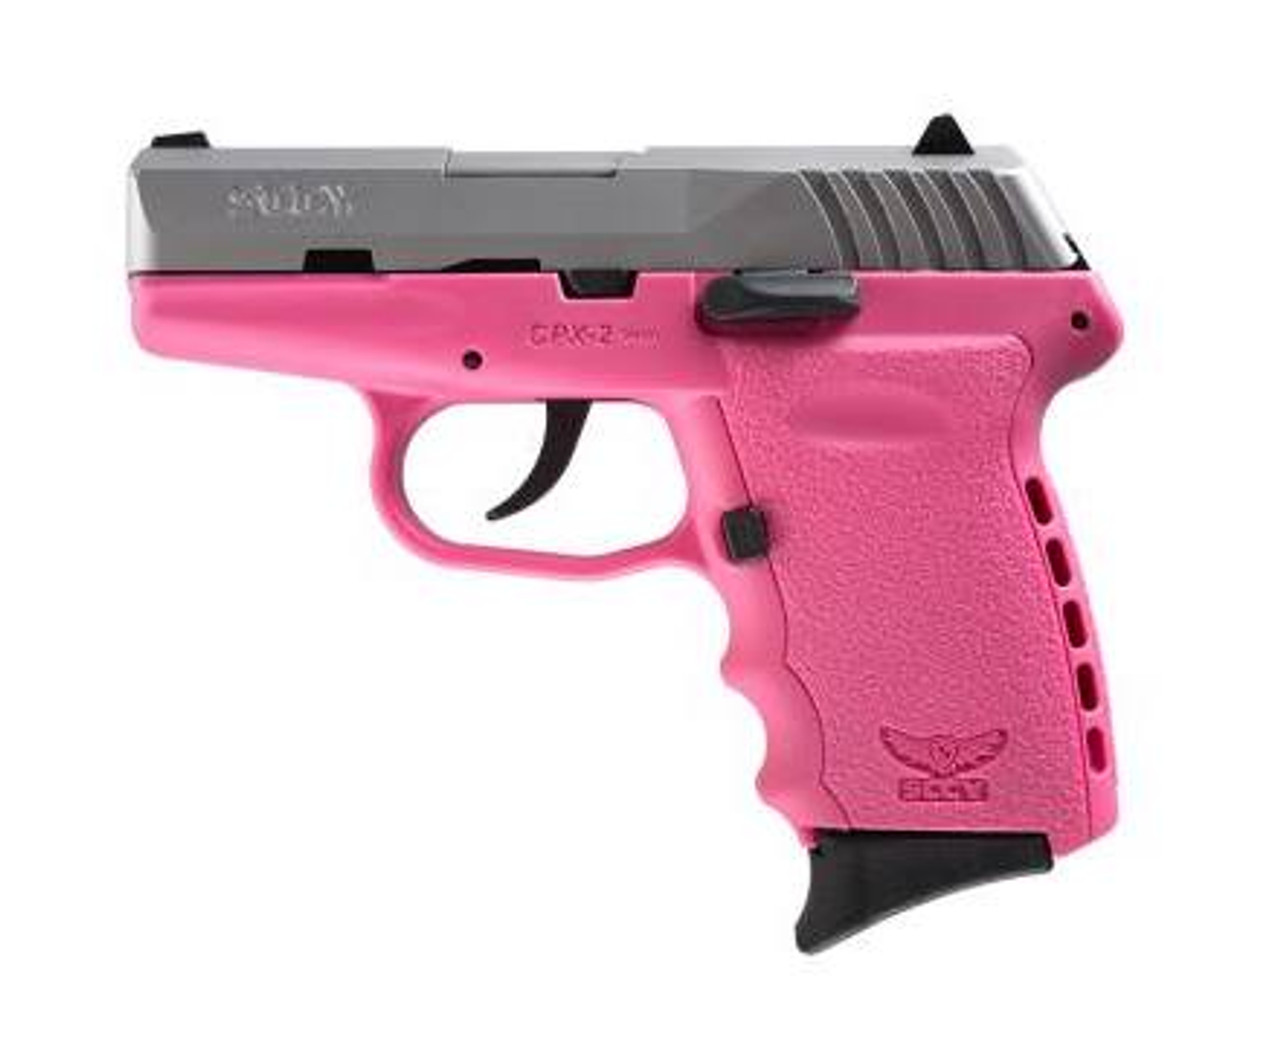 SCCY Industries Cpx-2 9mm Ss/pink 10+1